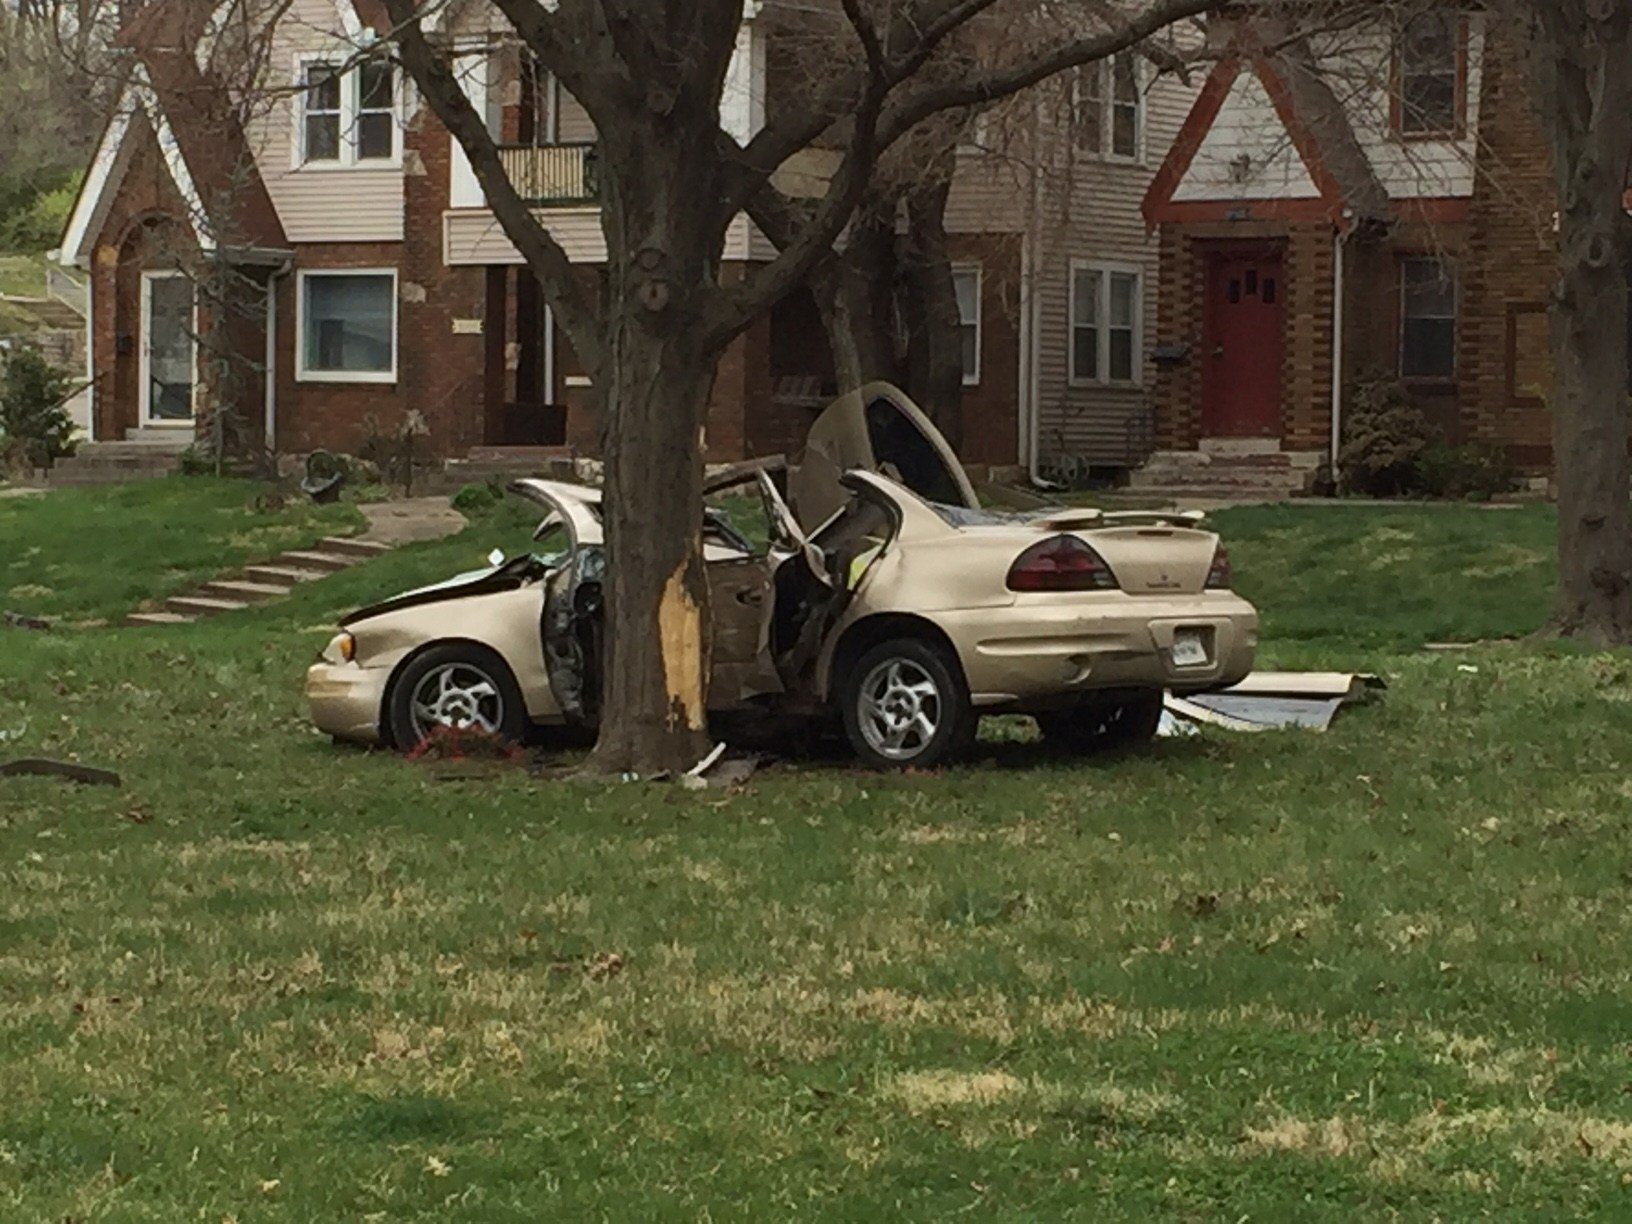 The car ran into a pole before hitting the tree. (Dwain Crispell/KCTV)